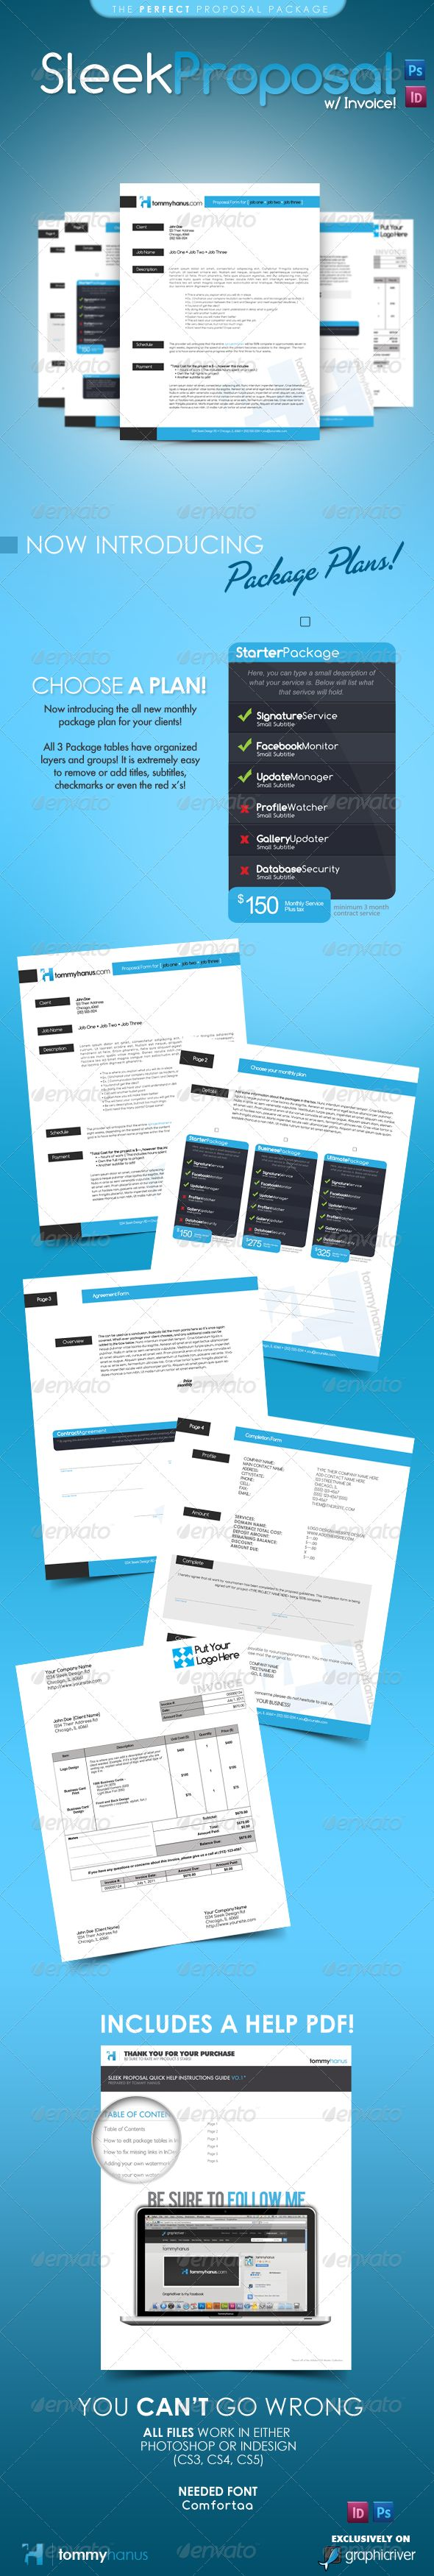 Sleek Proposal Template PSD, InDesign INDD. Download here: http://graphicriver.net/item/sleek-proposal-professional-proposal-template/308637?s_rank=1216&ref=yinkira